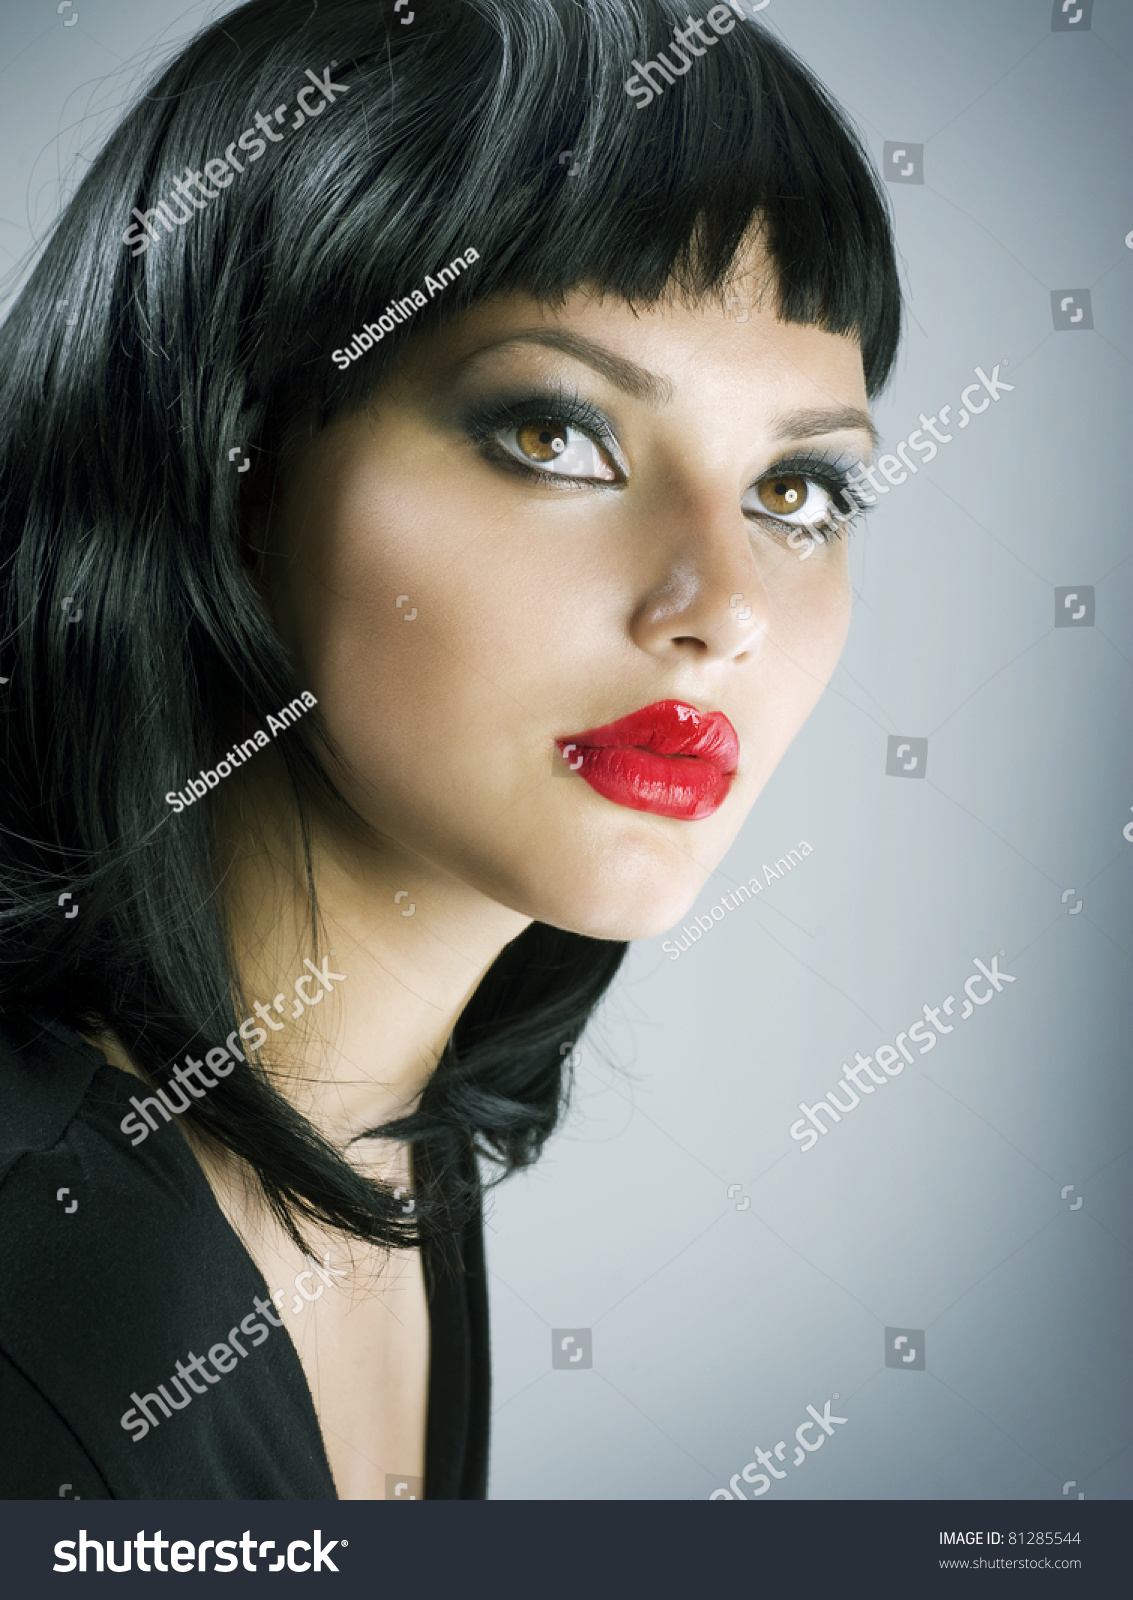 Brunette Extreme Makeup Gothic Girl Haircut Stock Photo Edit Now